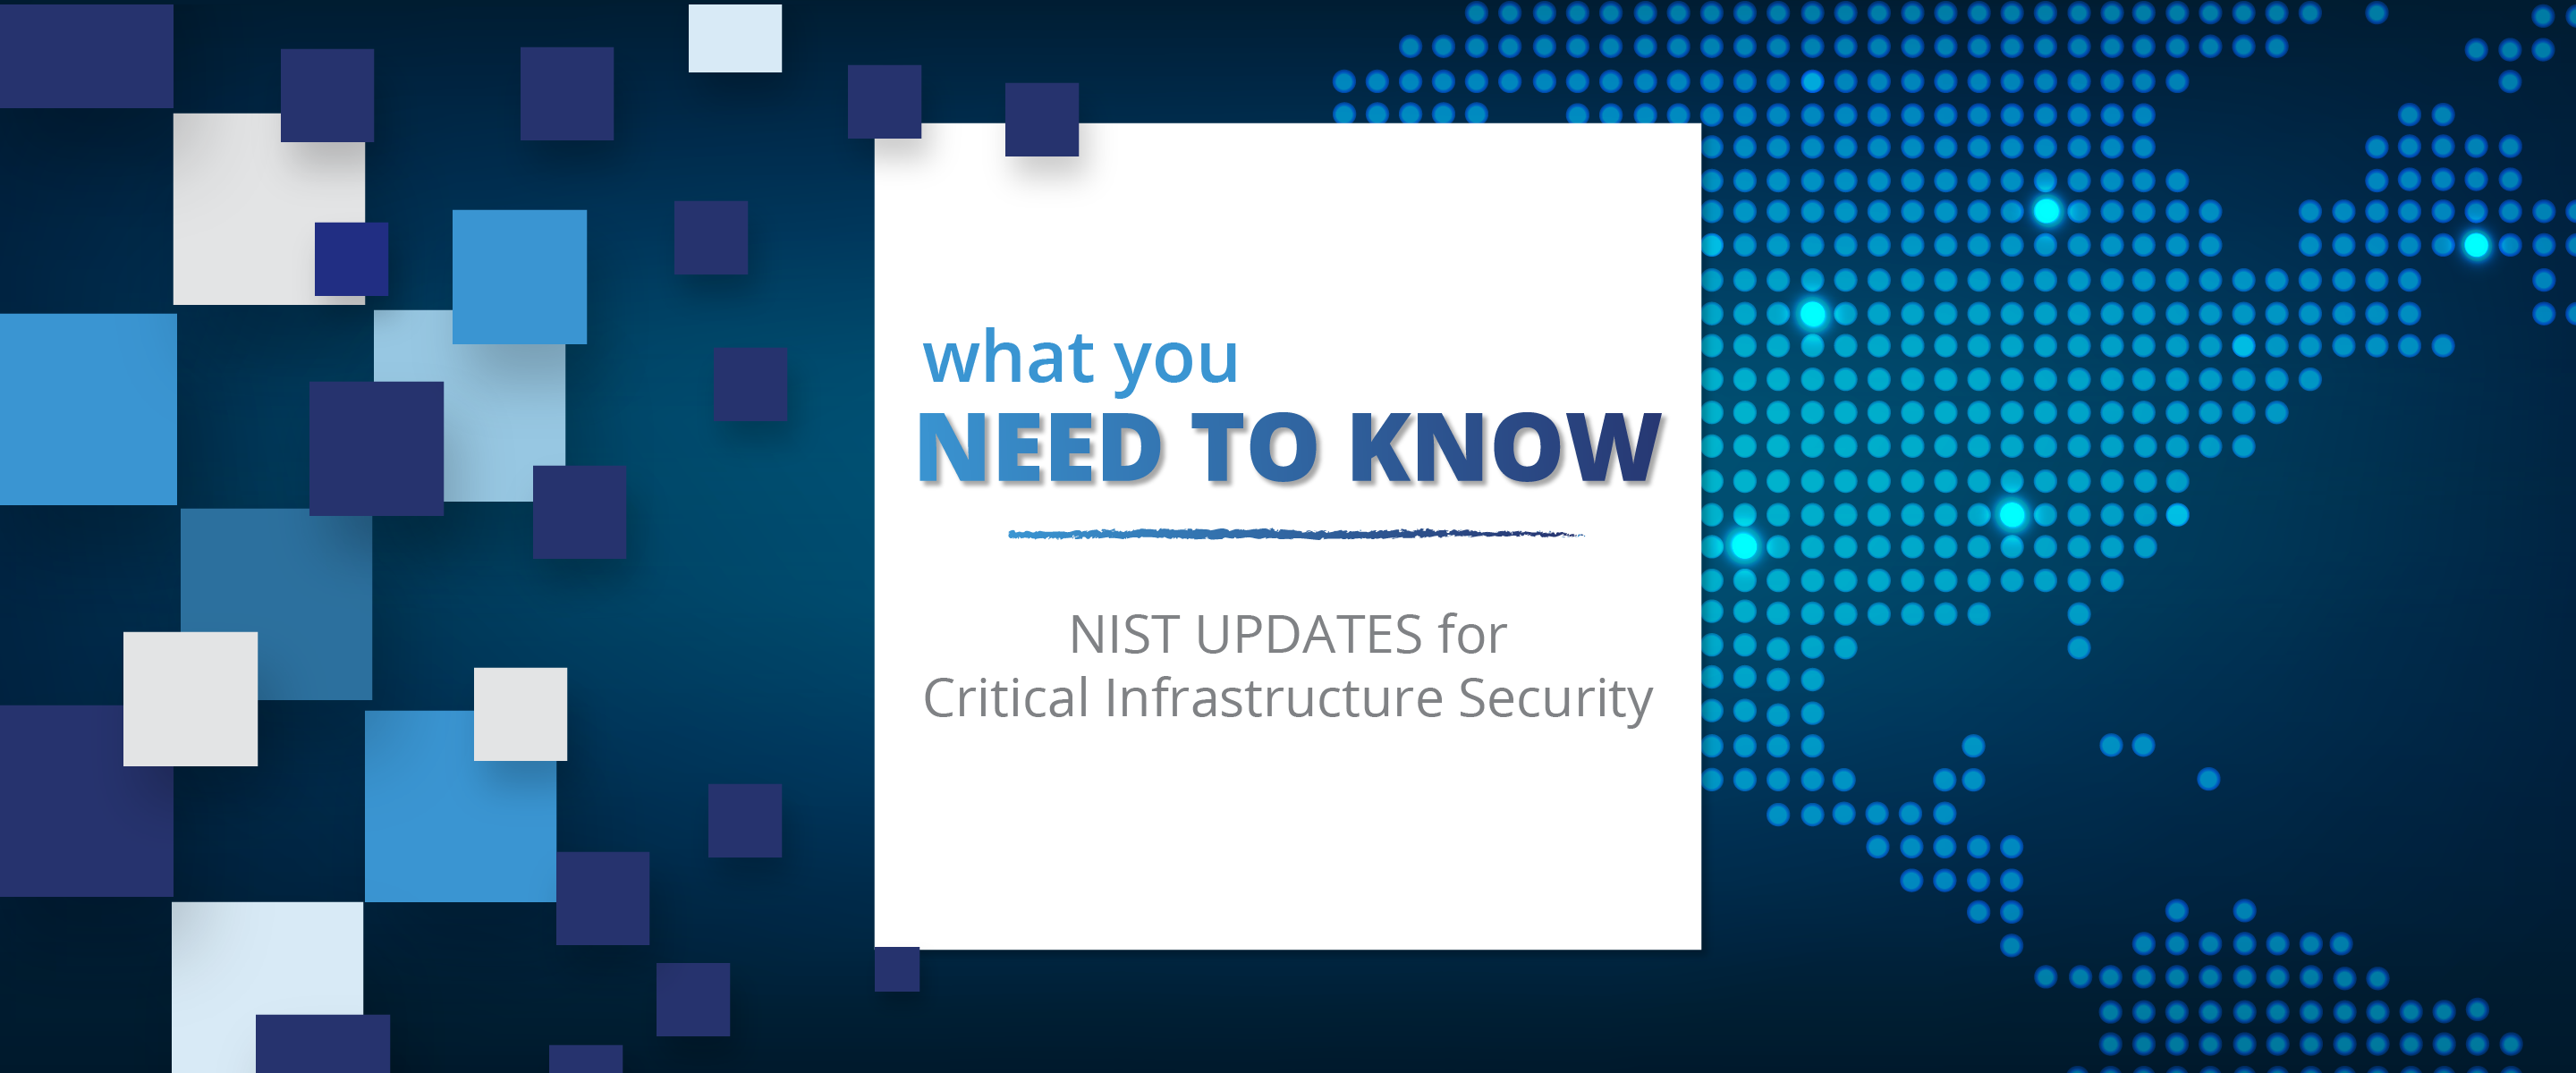 NIST Updates Guidance for Critical Infrastructure Security What You Need to Know